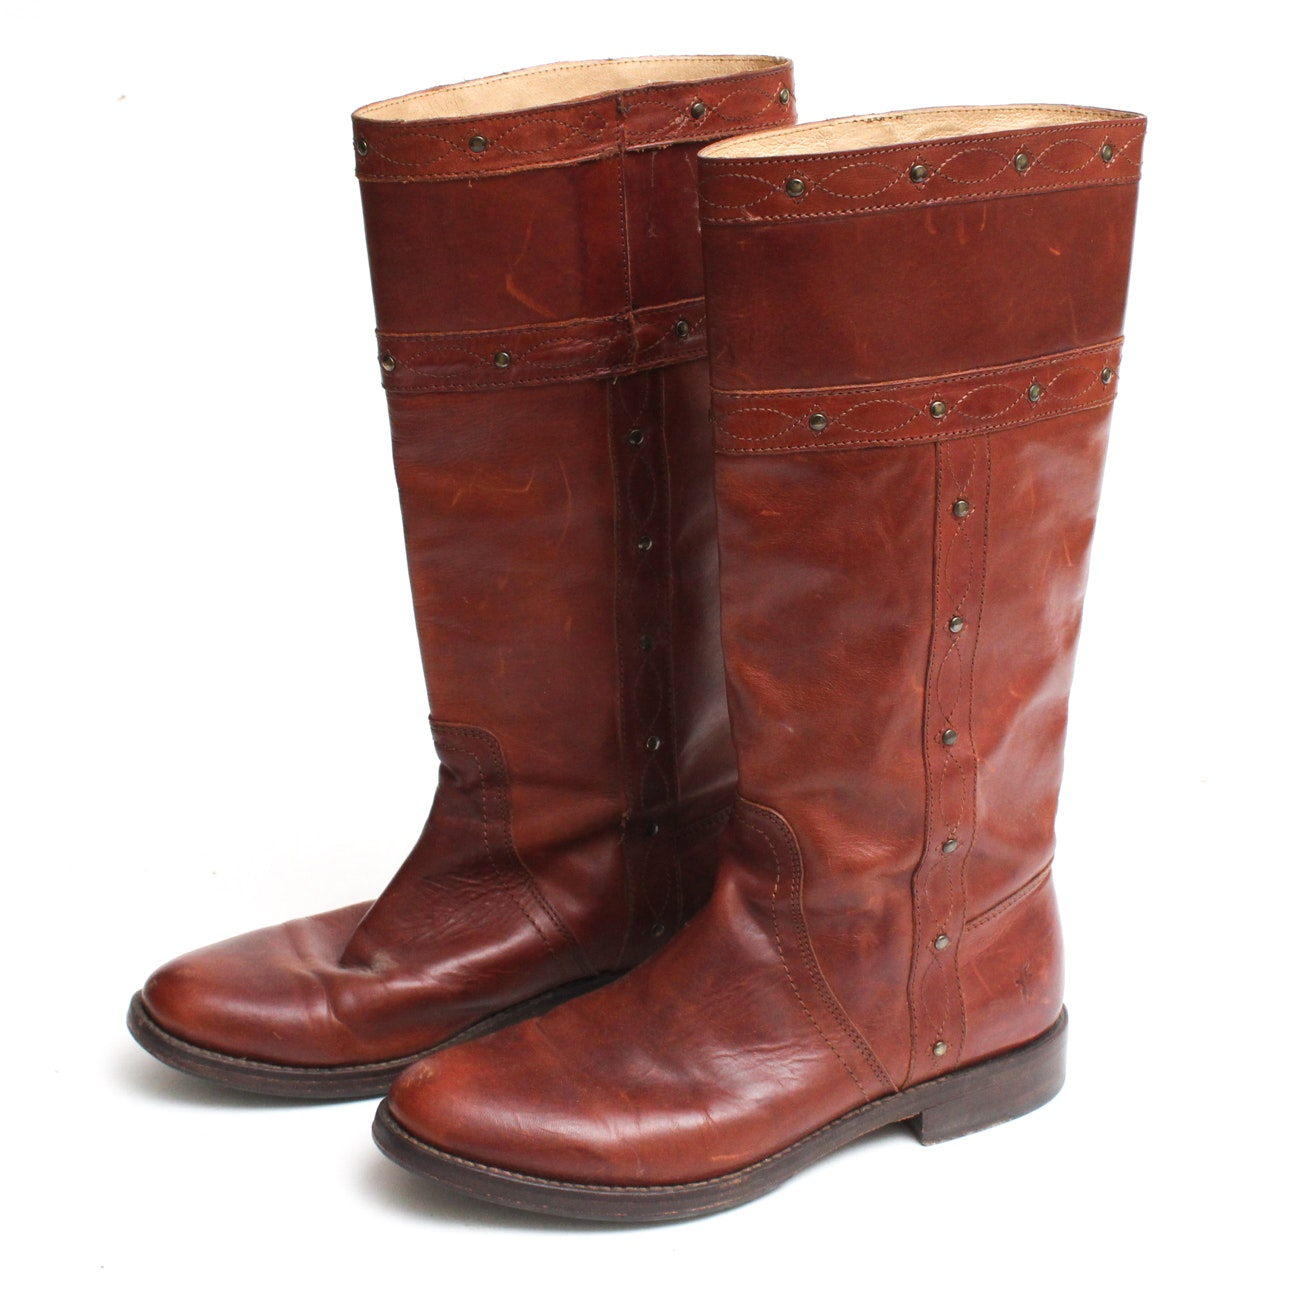 Frye Chestnut Leather Riding Boots